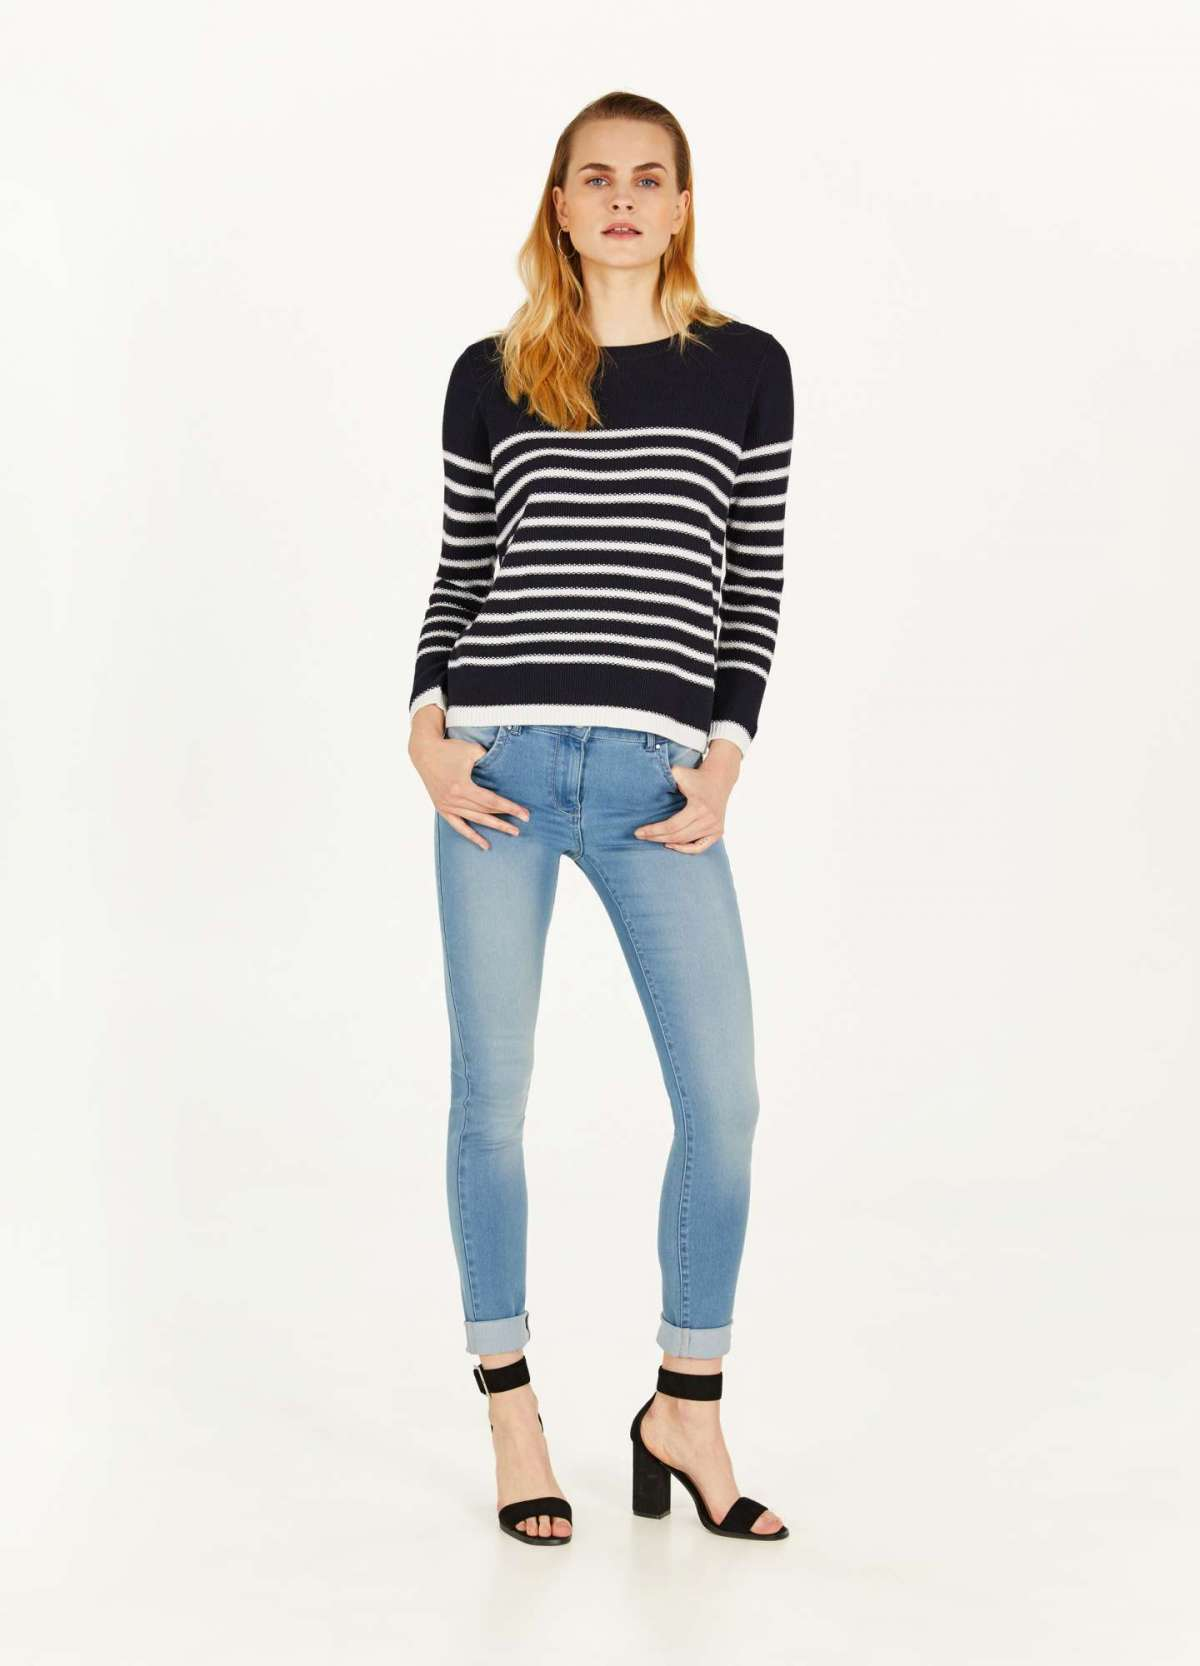 Jeans OVS slim fit a 24,99 euro